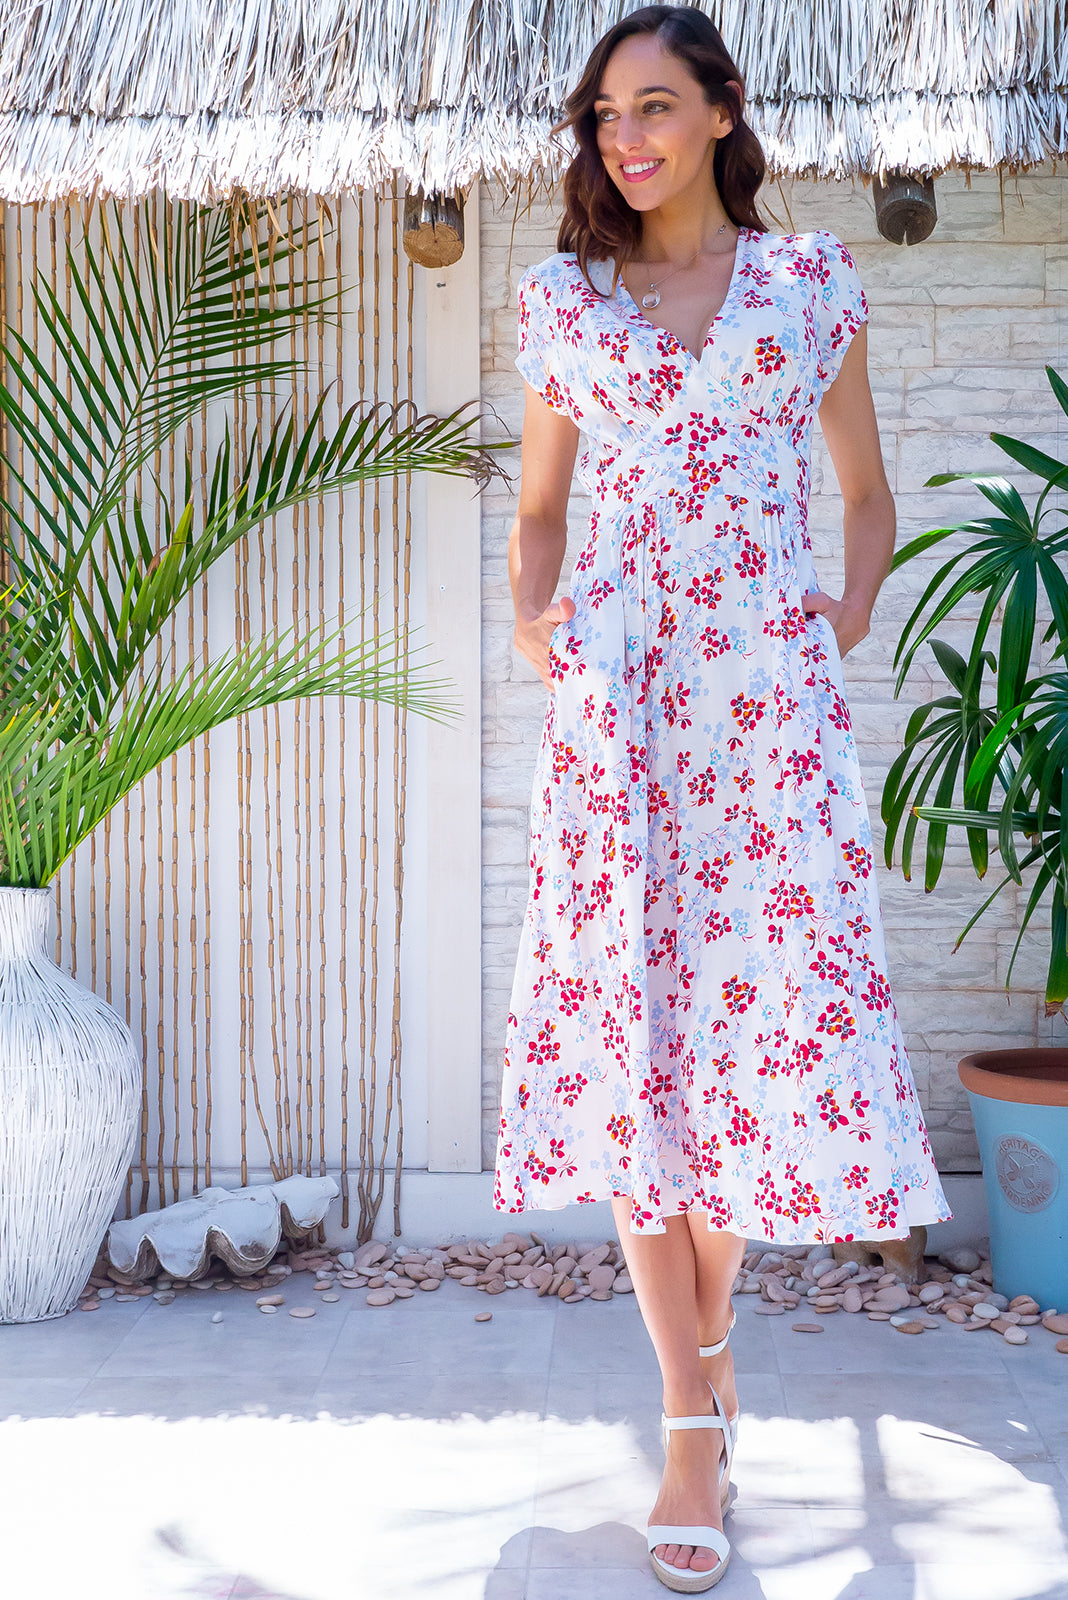 Popular Lizzie Dress now comes in white, the Lizzie Wonderland White Dress features fitted basque waist with gathered bust, deep side pockets and 100% rayon in white base with powder blue and red blossom print.